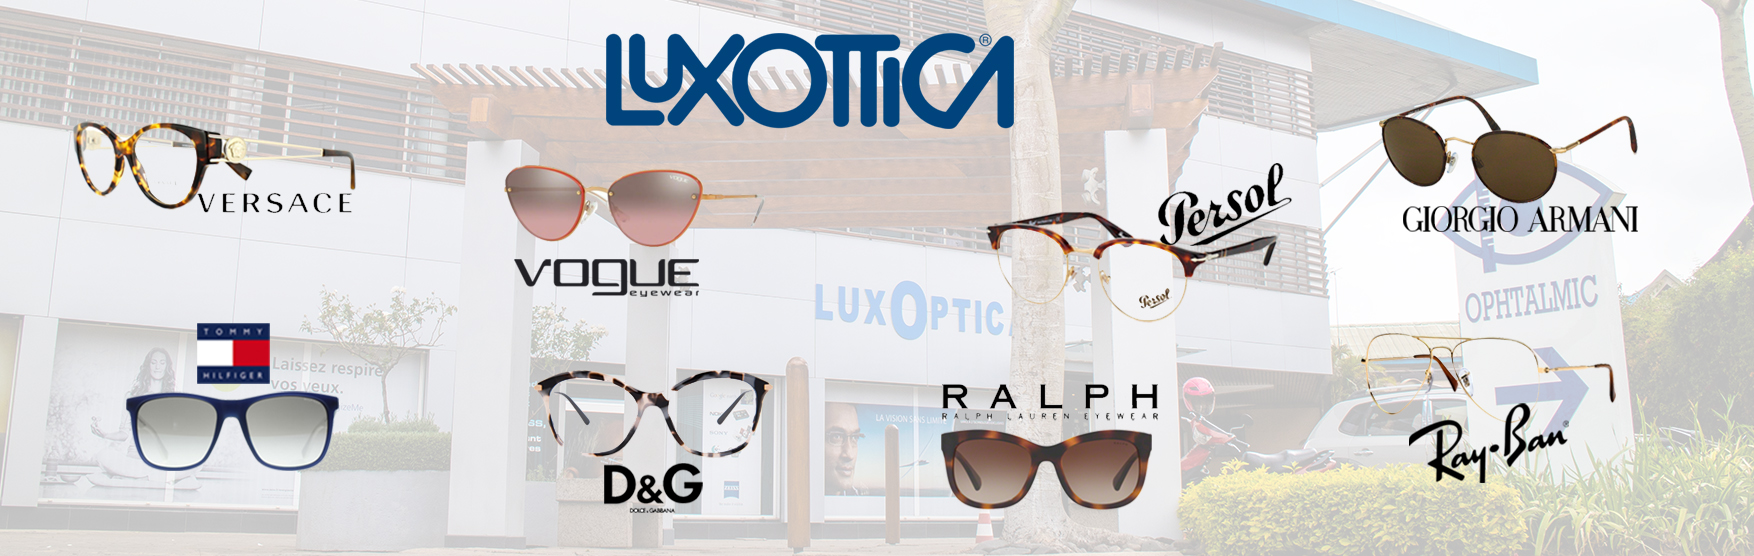 LUXOTTICA-GROUP-1